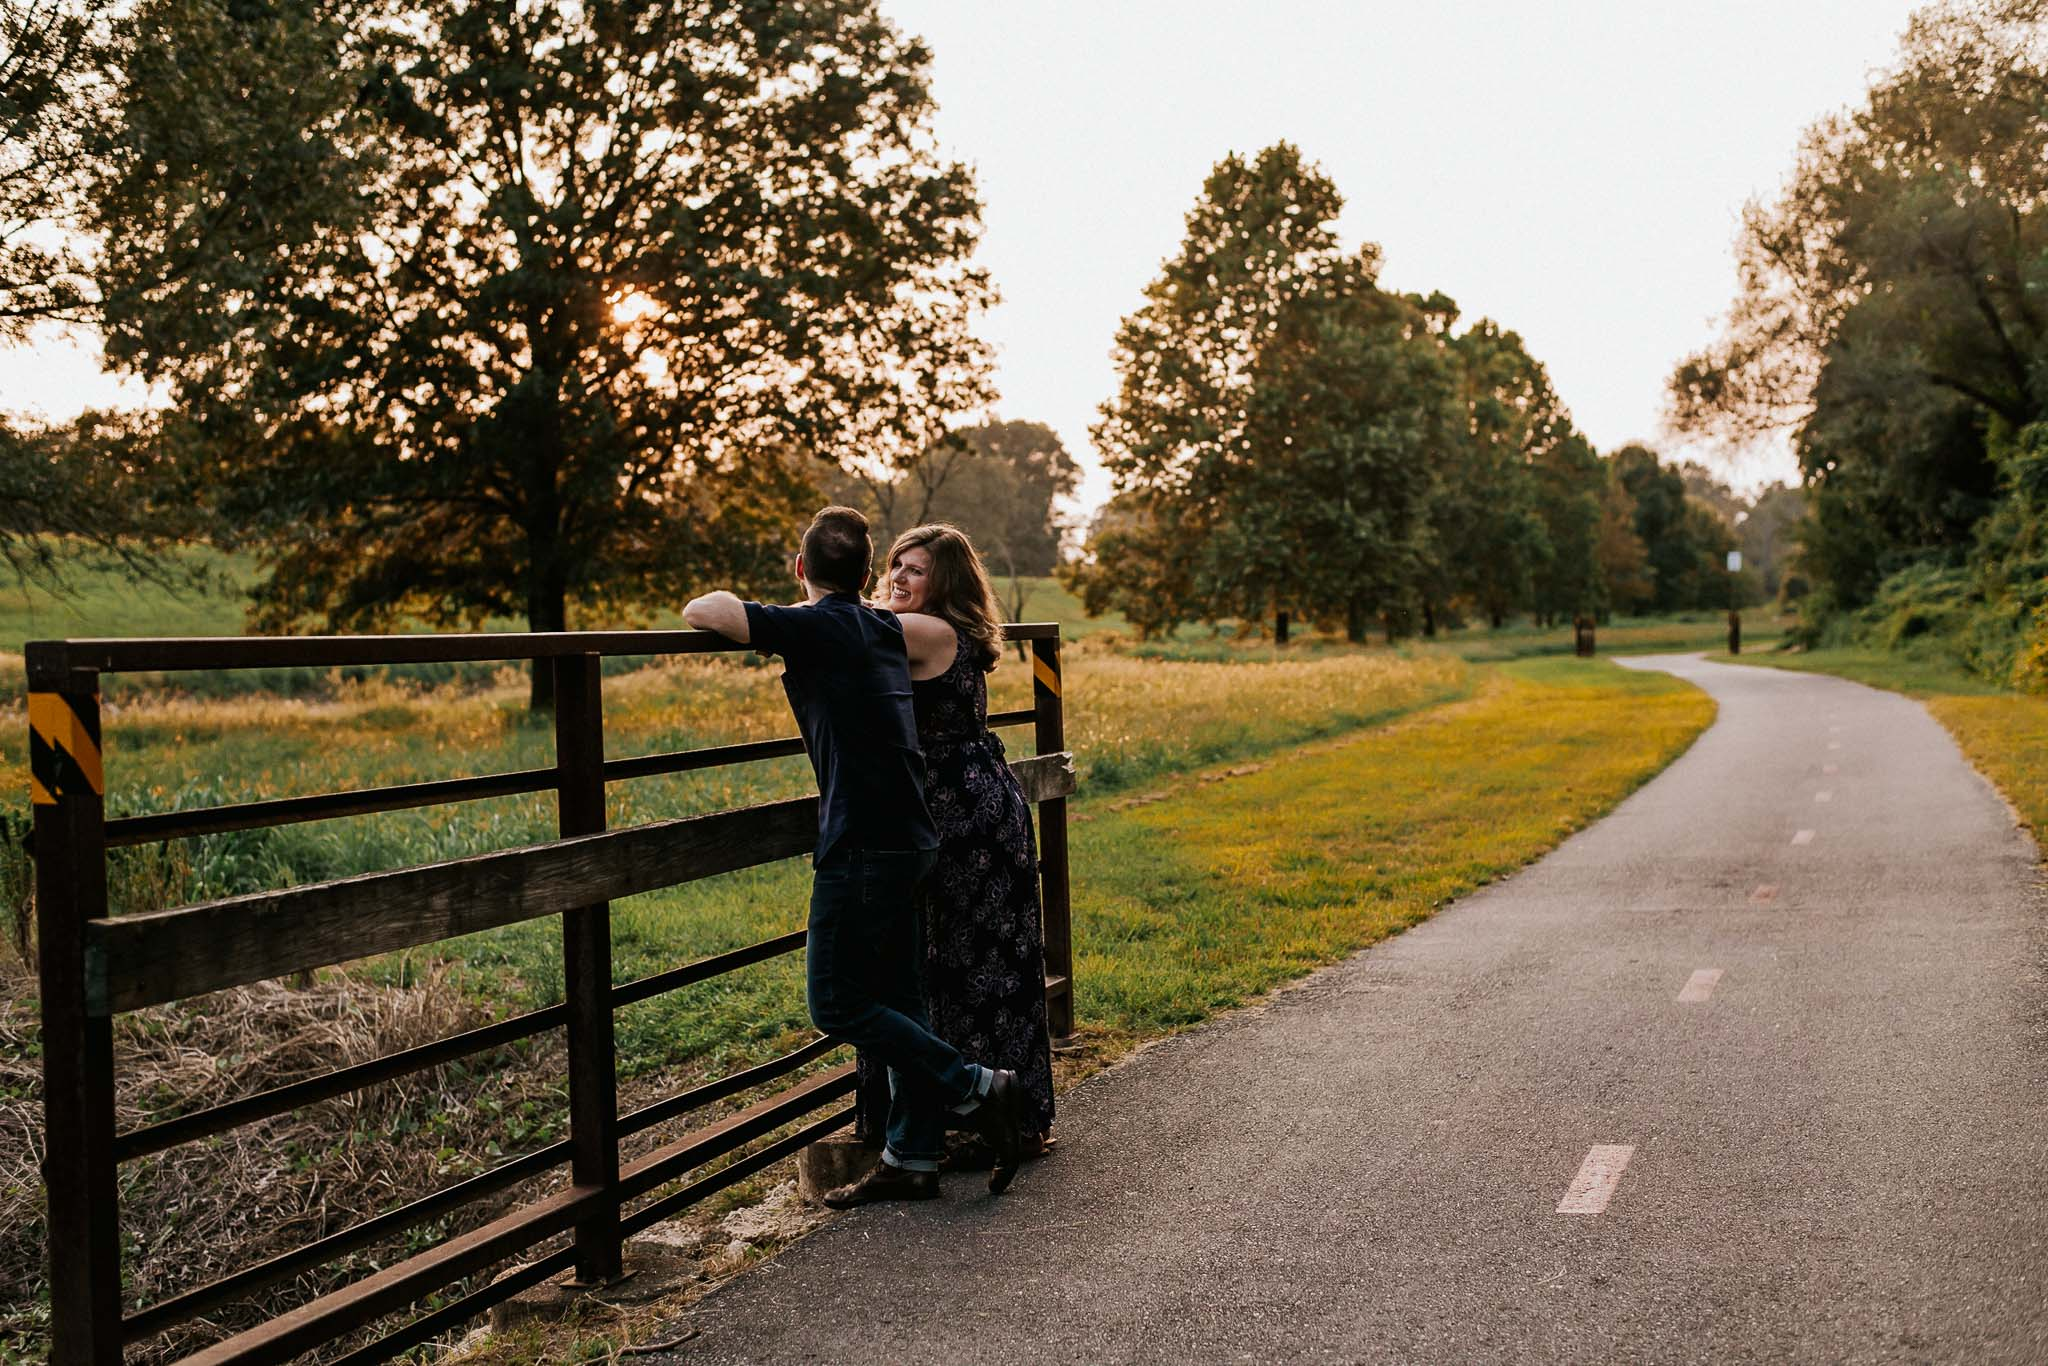 Get excited! It's time to book your spring mini session. - One day only! Join me for a day of Fall Family Mini-Sessions on the Anacostia River Trail. This gorgeous location will make a perfect backdrop for your holiday cards or gifts.